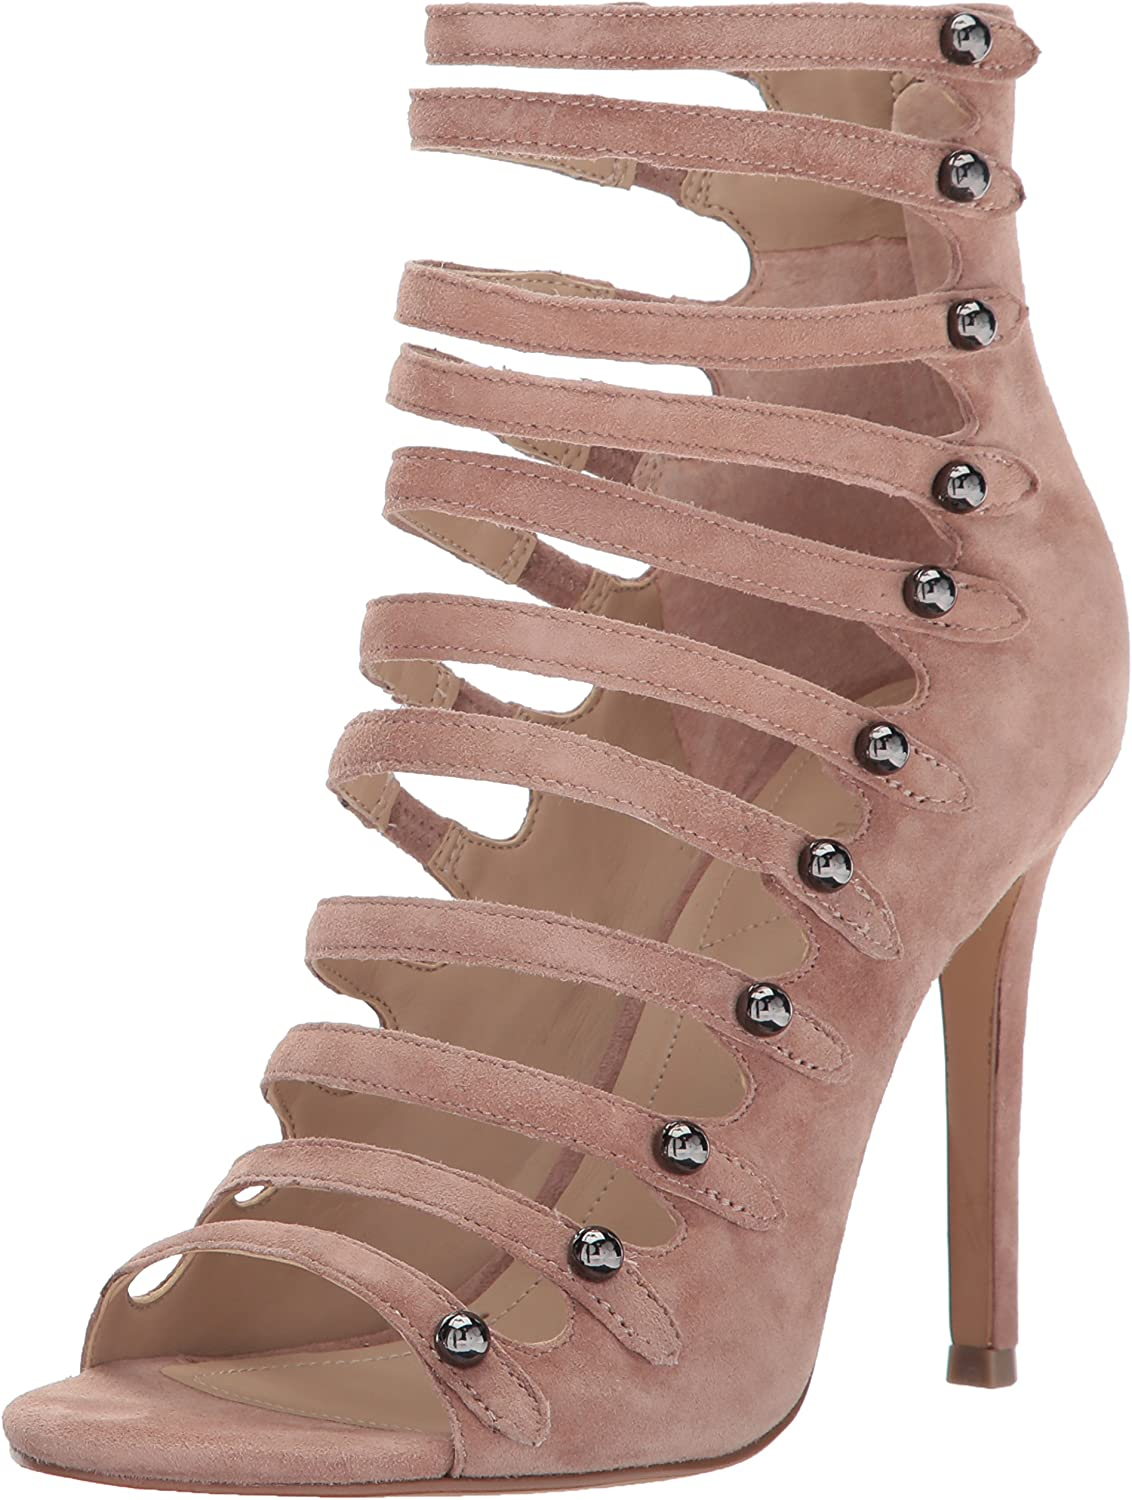 KENDALL + KYLIE Women's GIAA Heeled Sandals